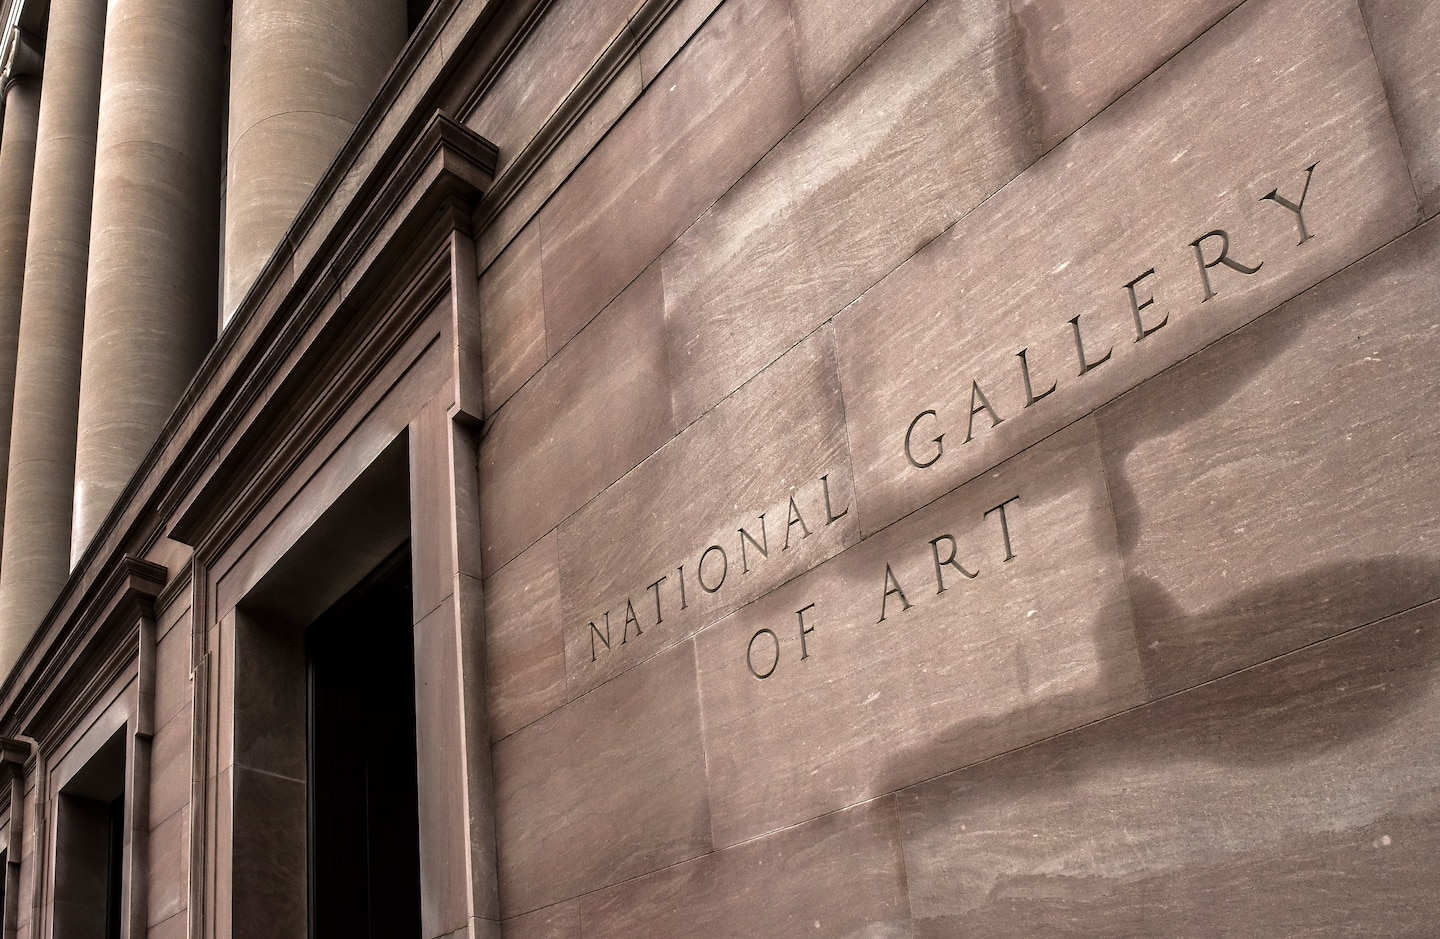 National Gallery of Art will reopen some galleries on July 20